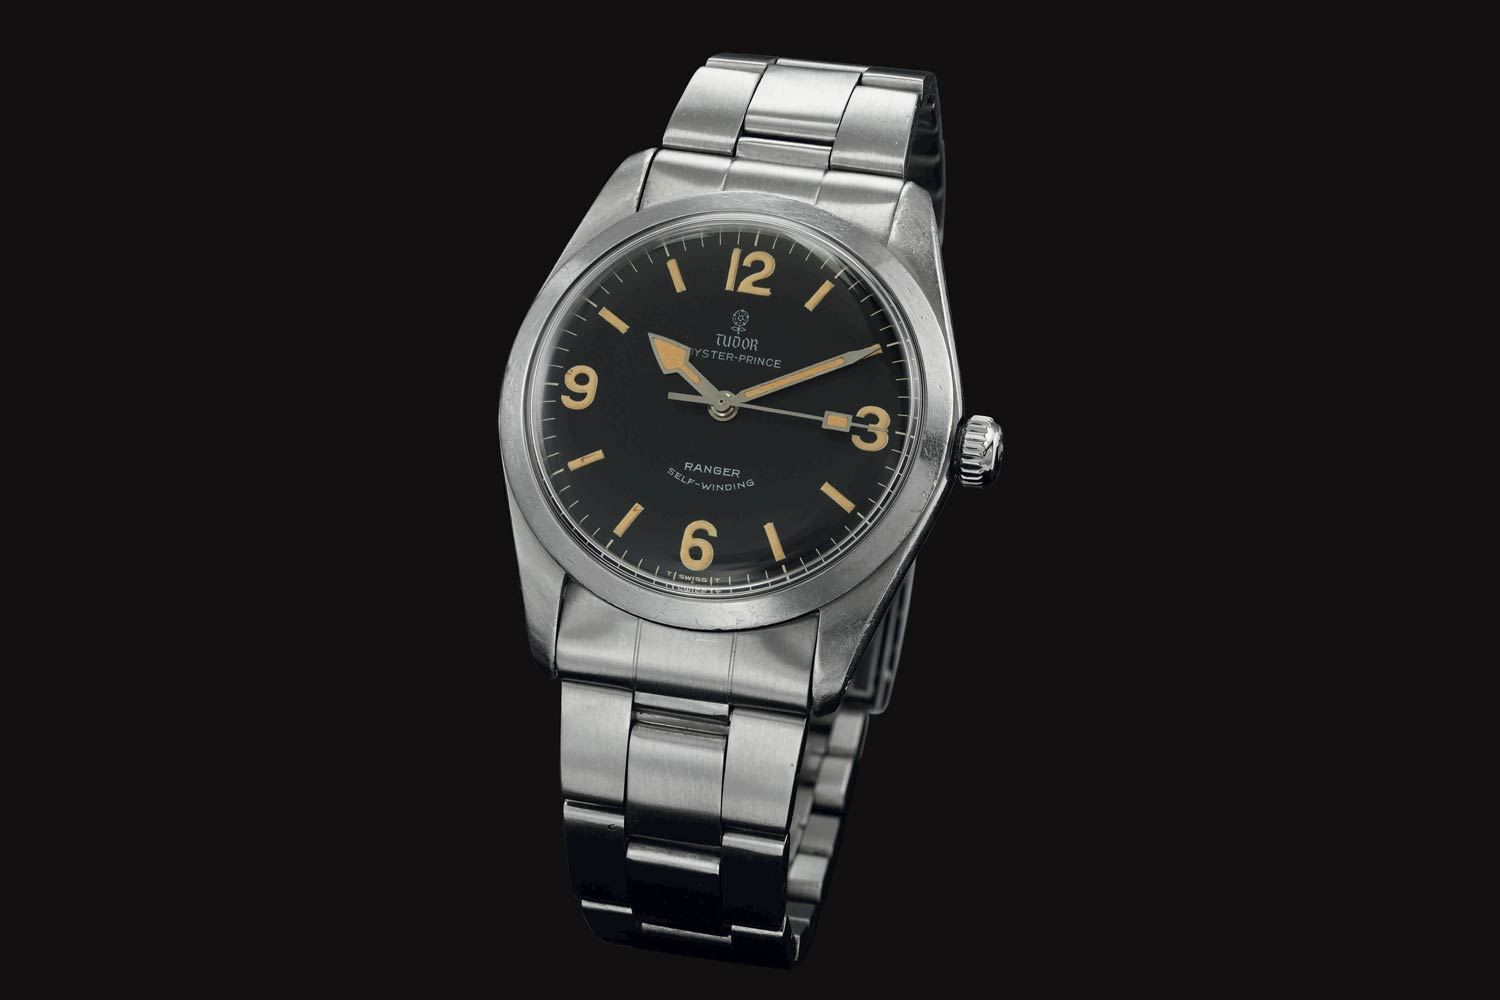 The Tudor Ranger II with an integrated bracelet from 1973